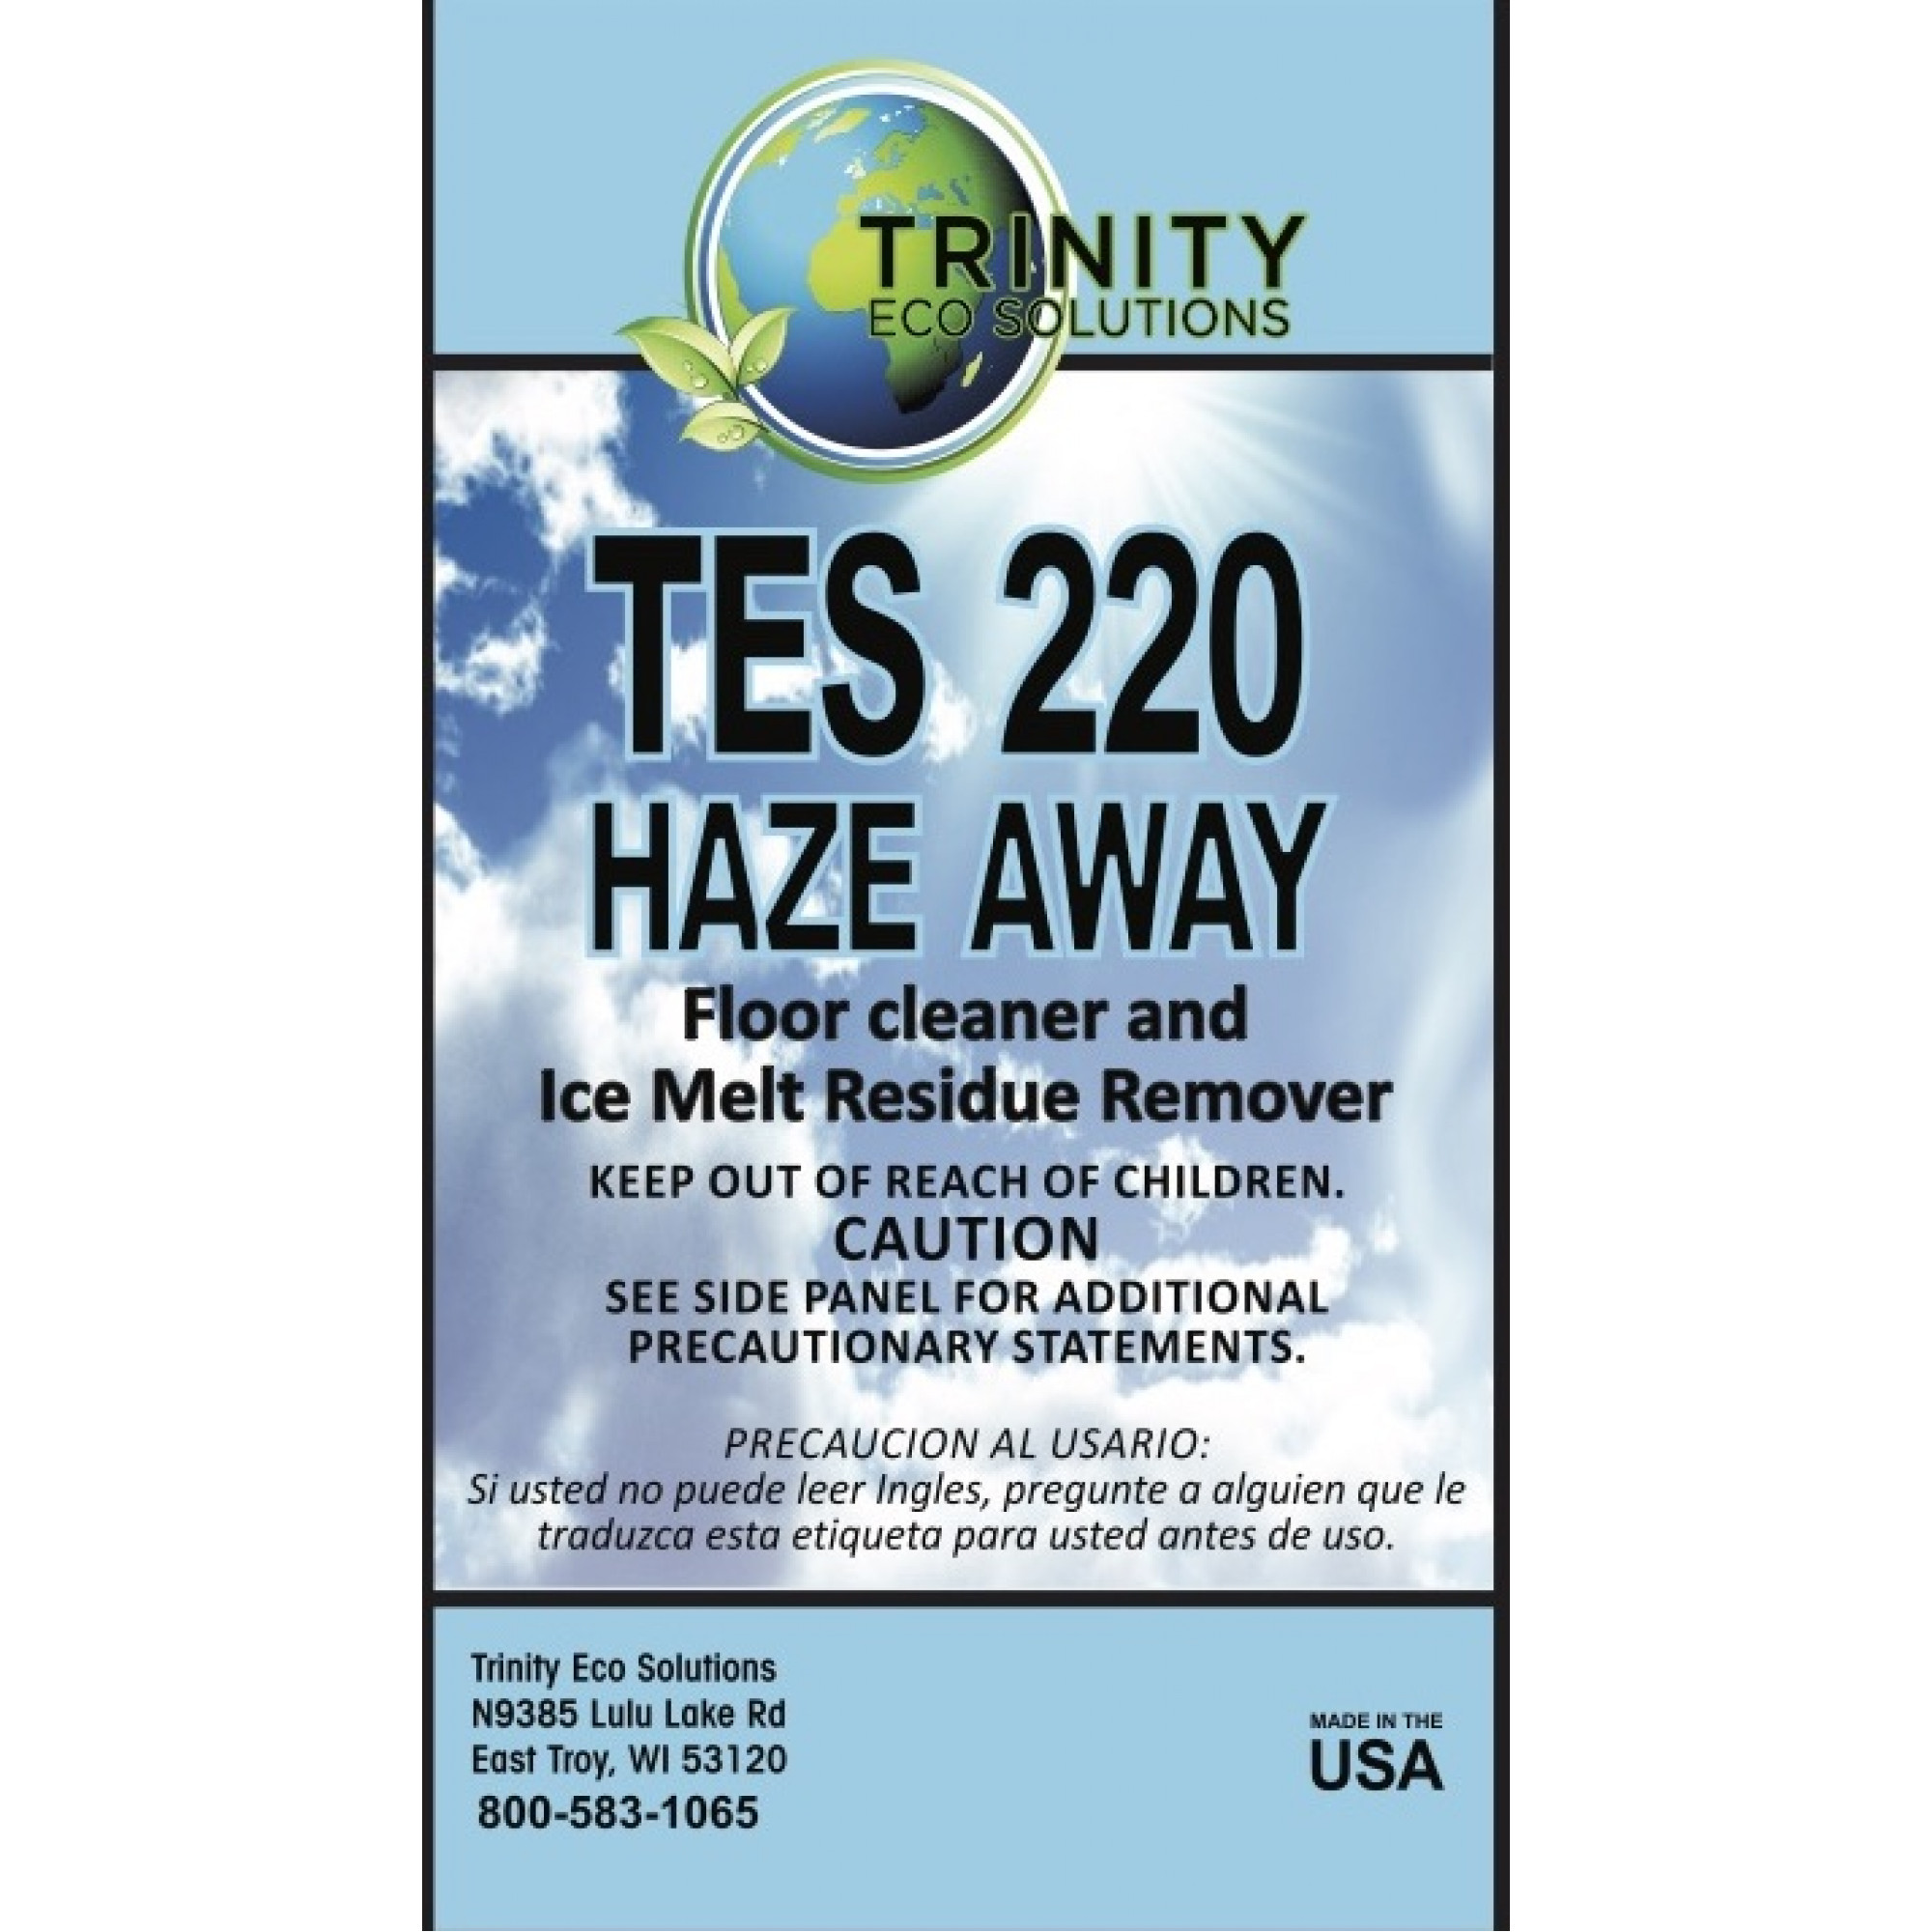 TES 220 Haze Away